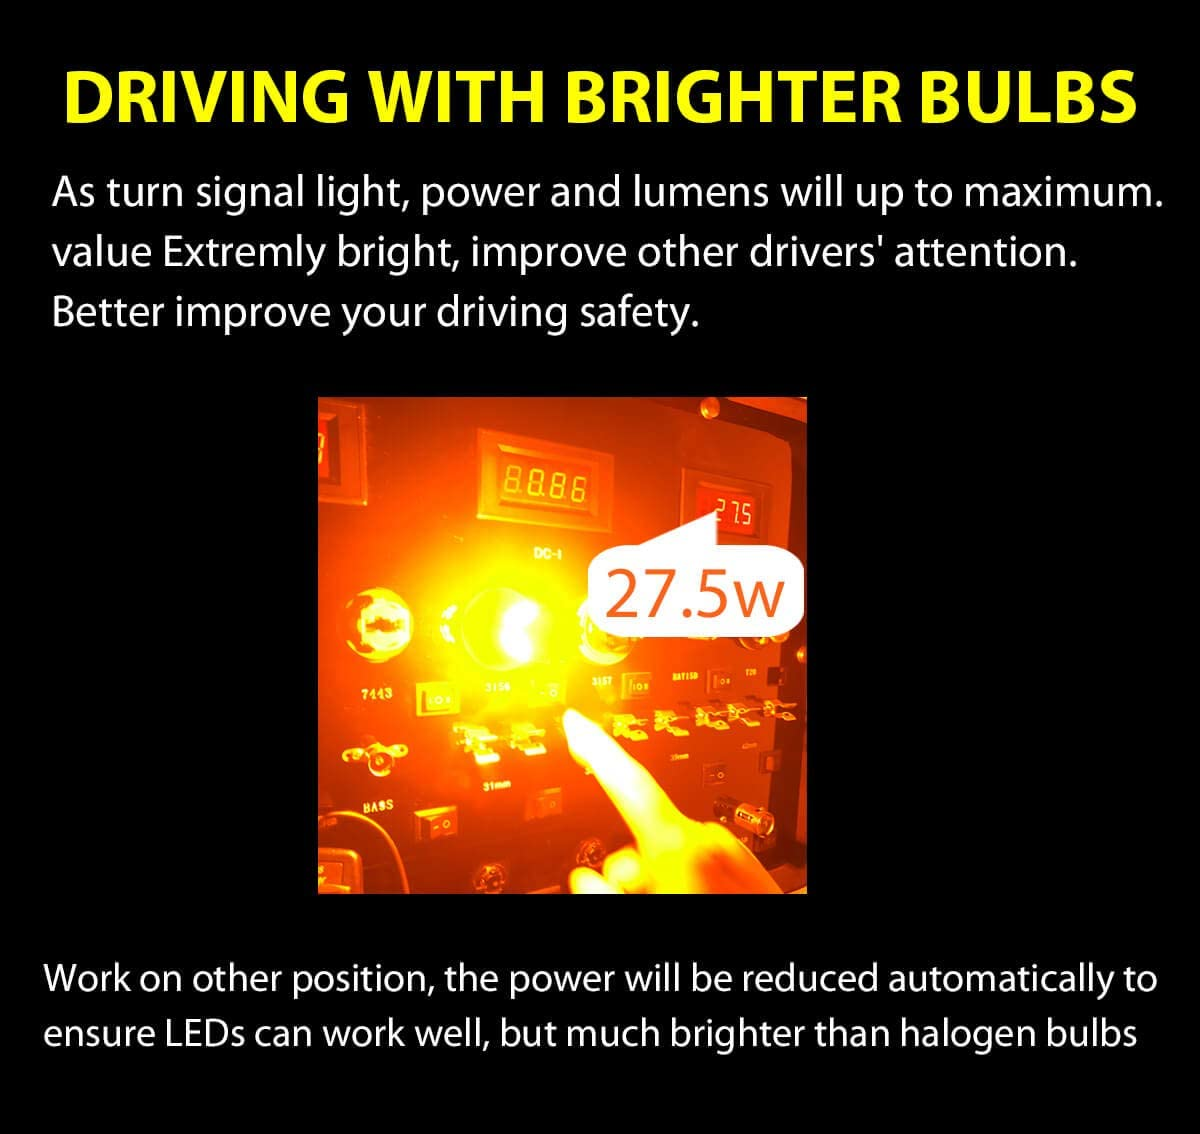 Pack of 2 28W 2600LM Extremely Bright Amber Yellow-1 Yr Warranty Build-in CANBUS Anti Hyper Flash 3156 3056 P27W LED Turn Signal Light Blinker Bulbs Plug /& Play No Load Resistor Need